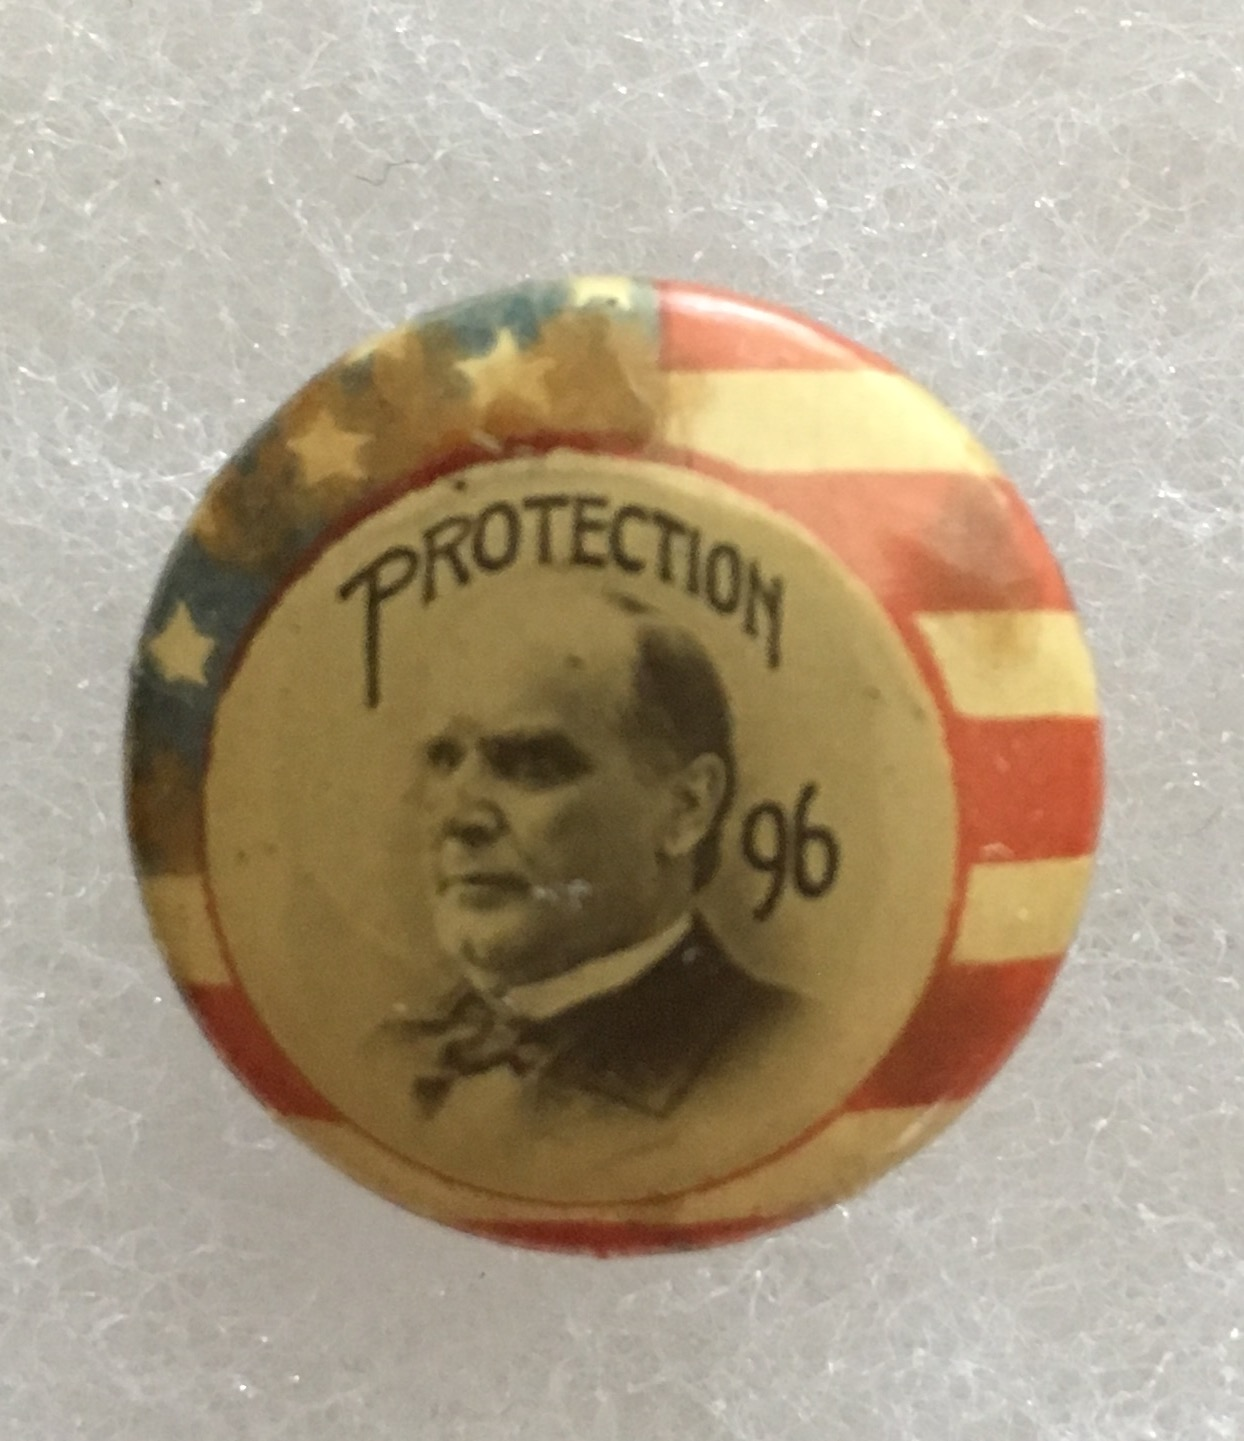 f6619d359be 1896 William McKinley Protection 96 Campaign Button Stud Back ...